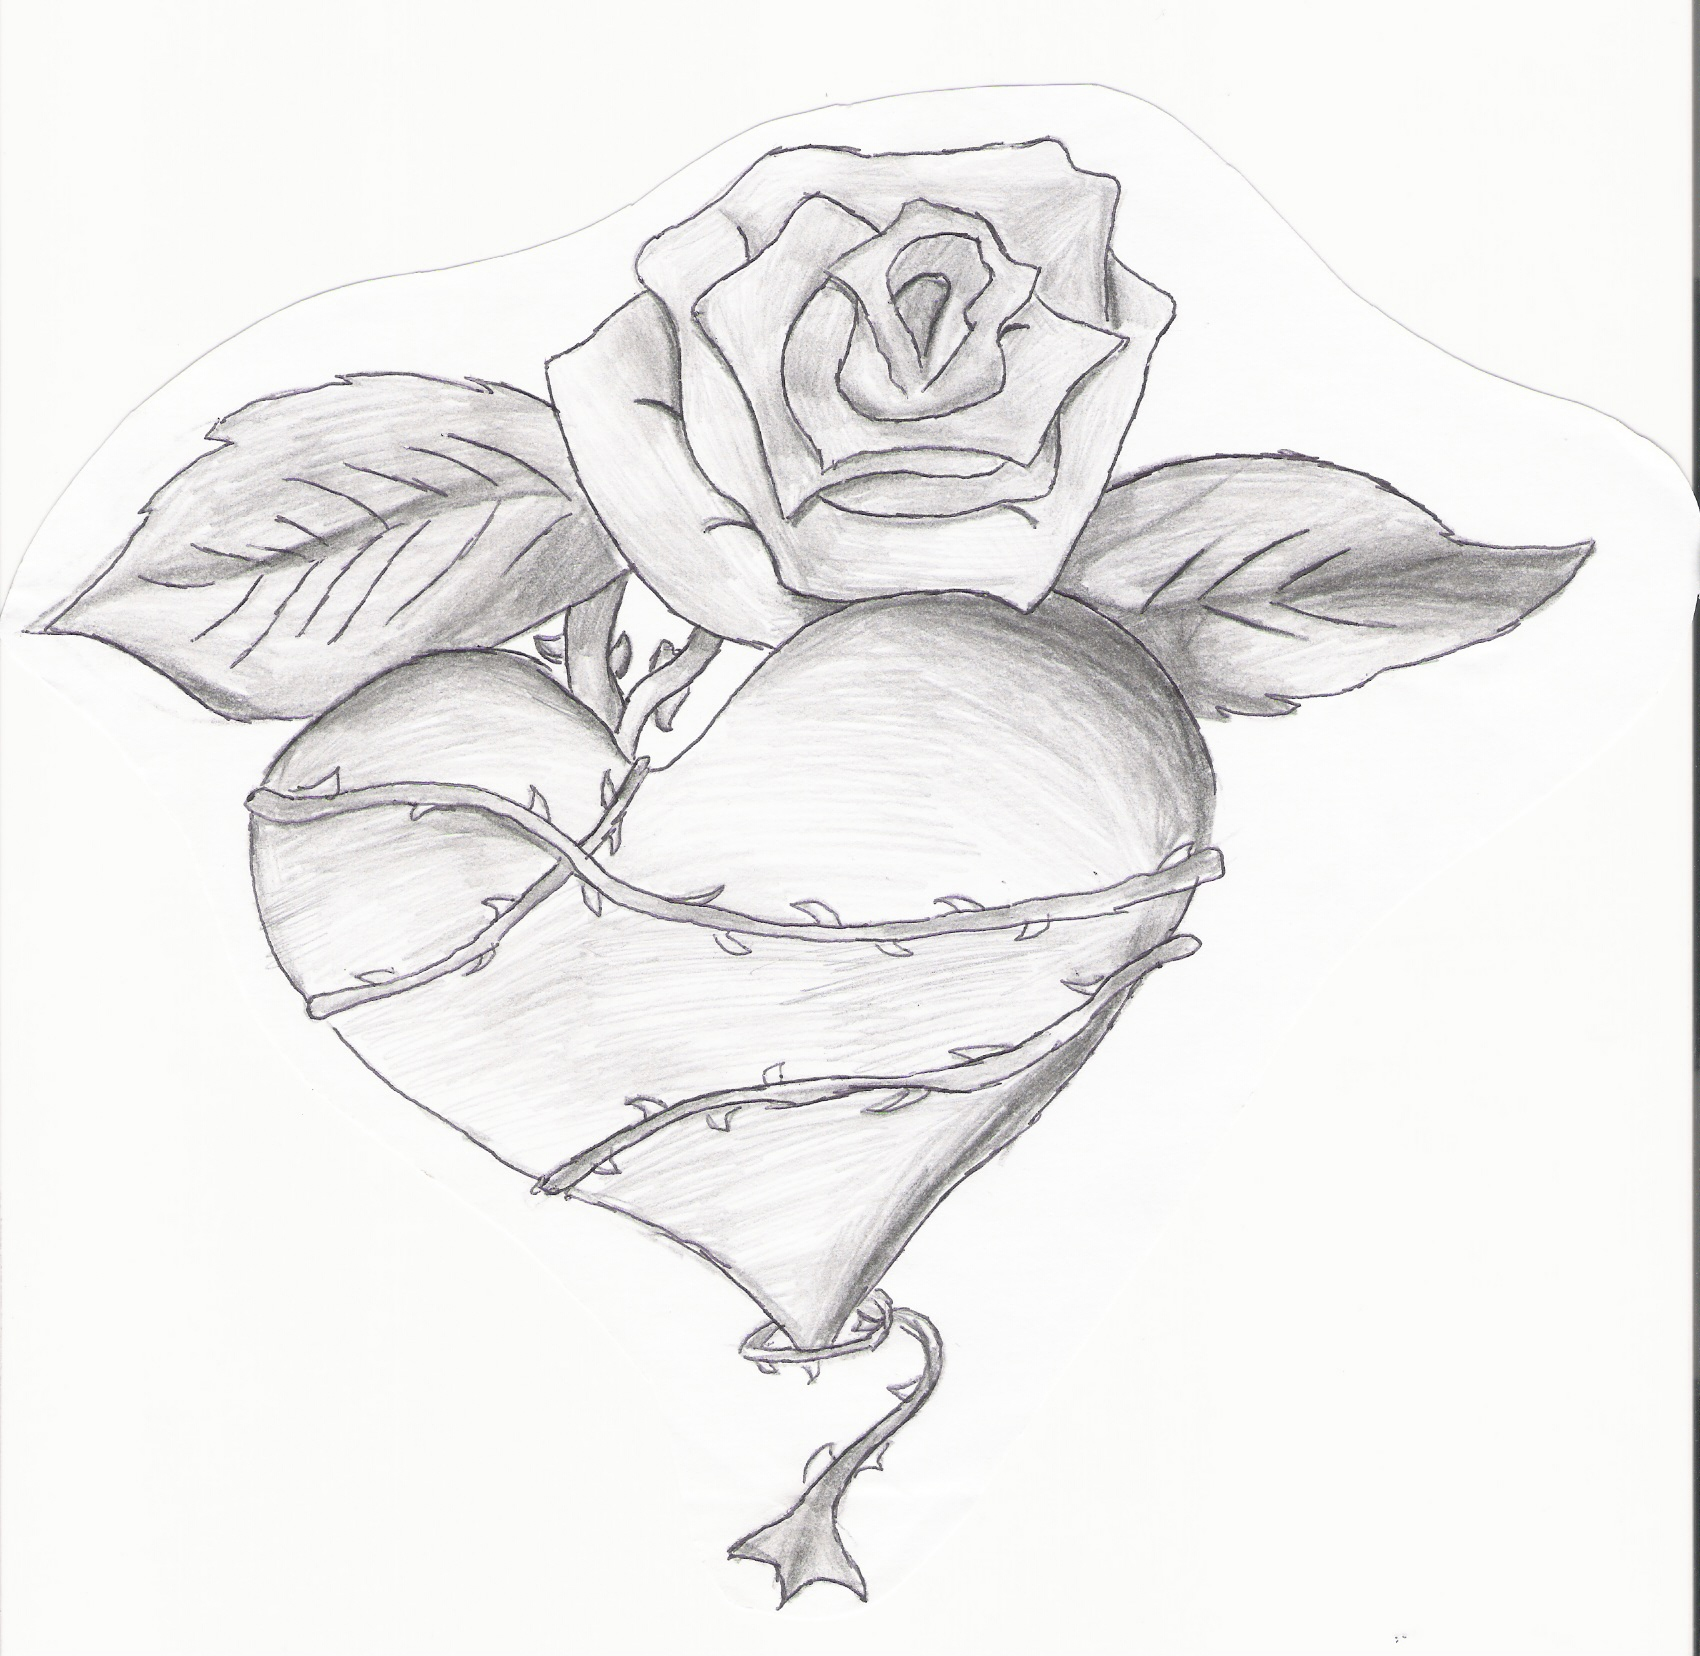 How To Draw A Heart With A Rose Through It